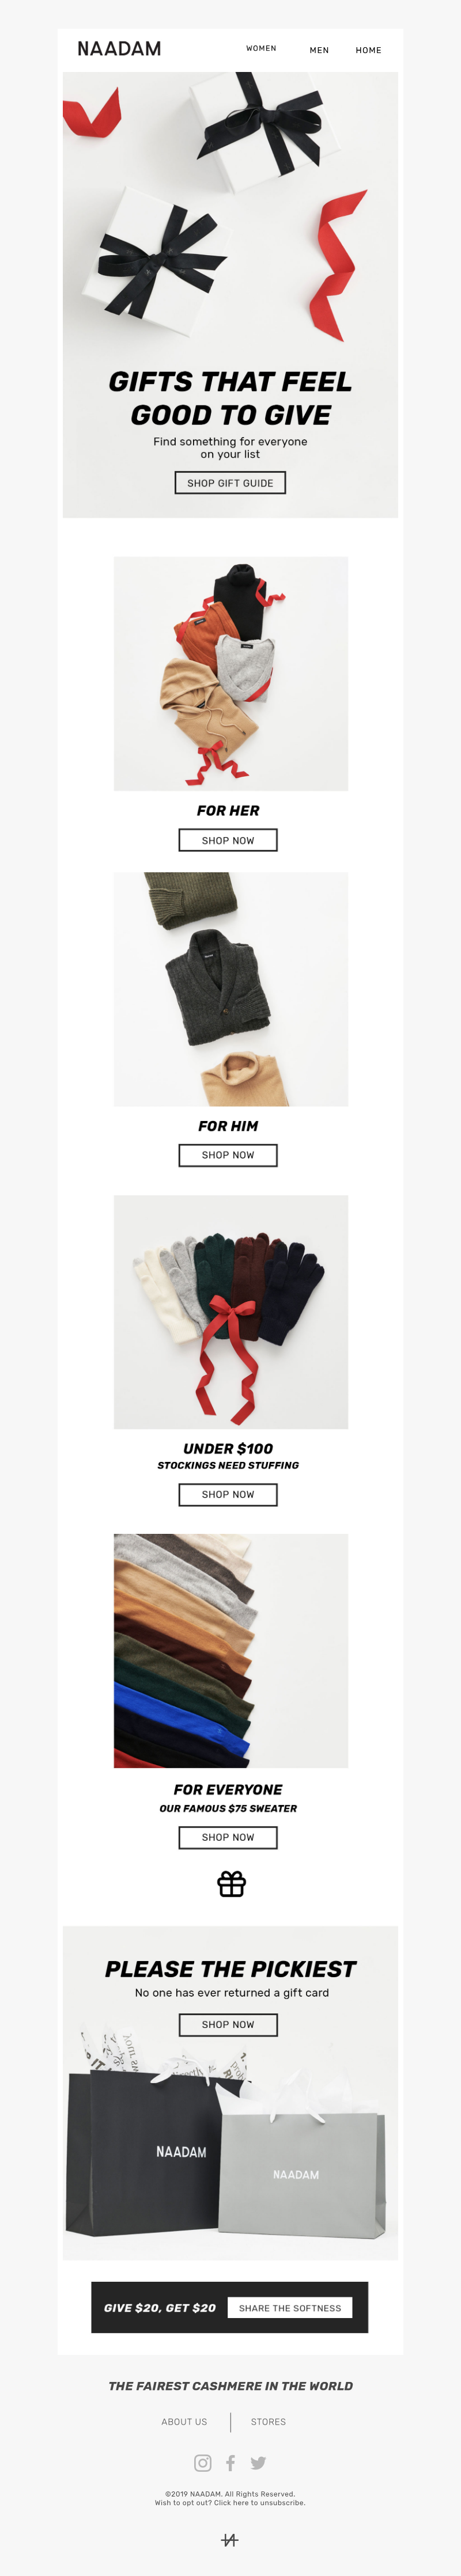 Gift guide email example sent by Naadam